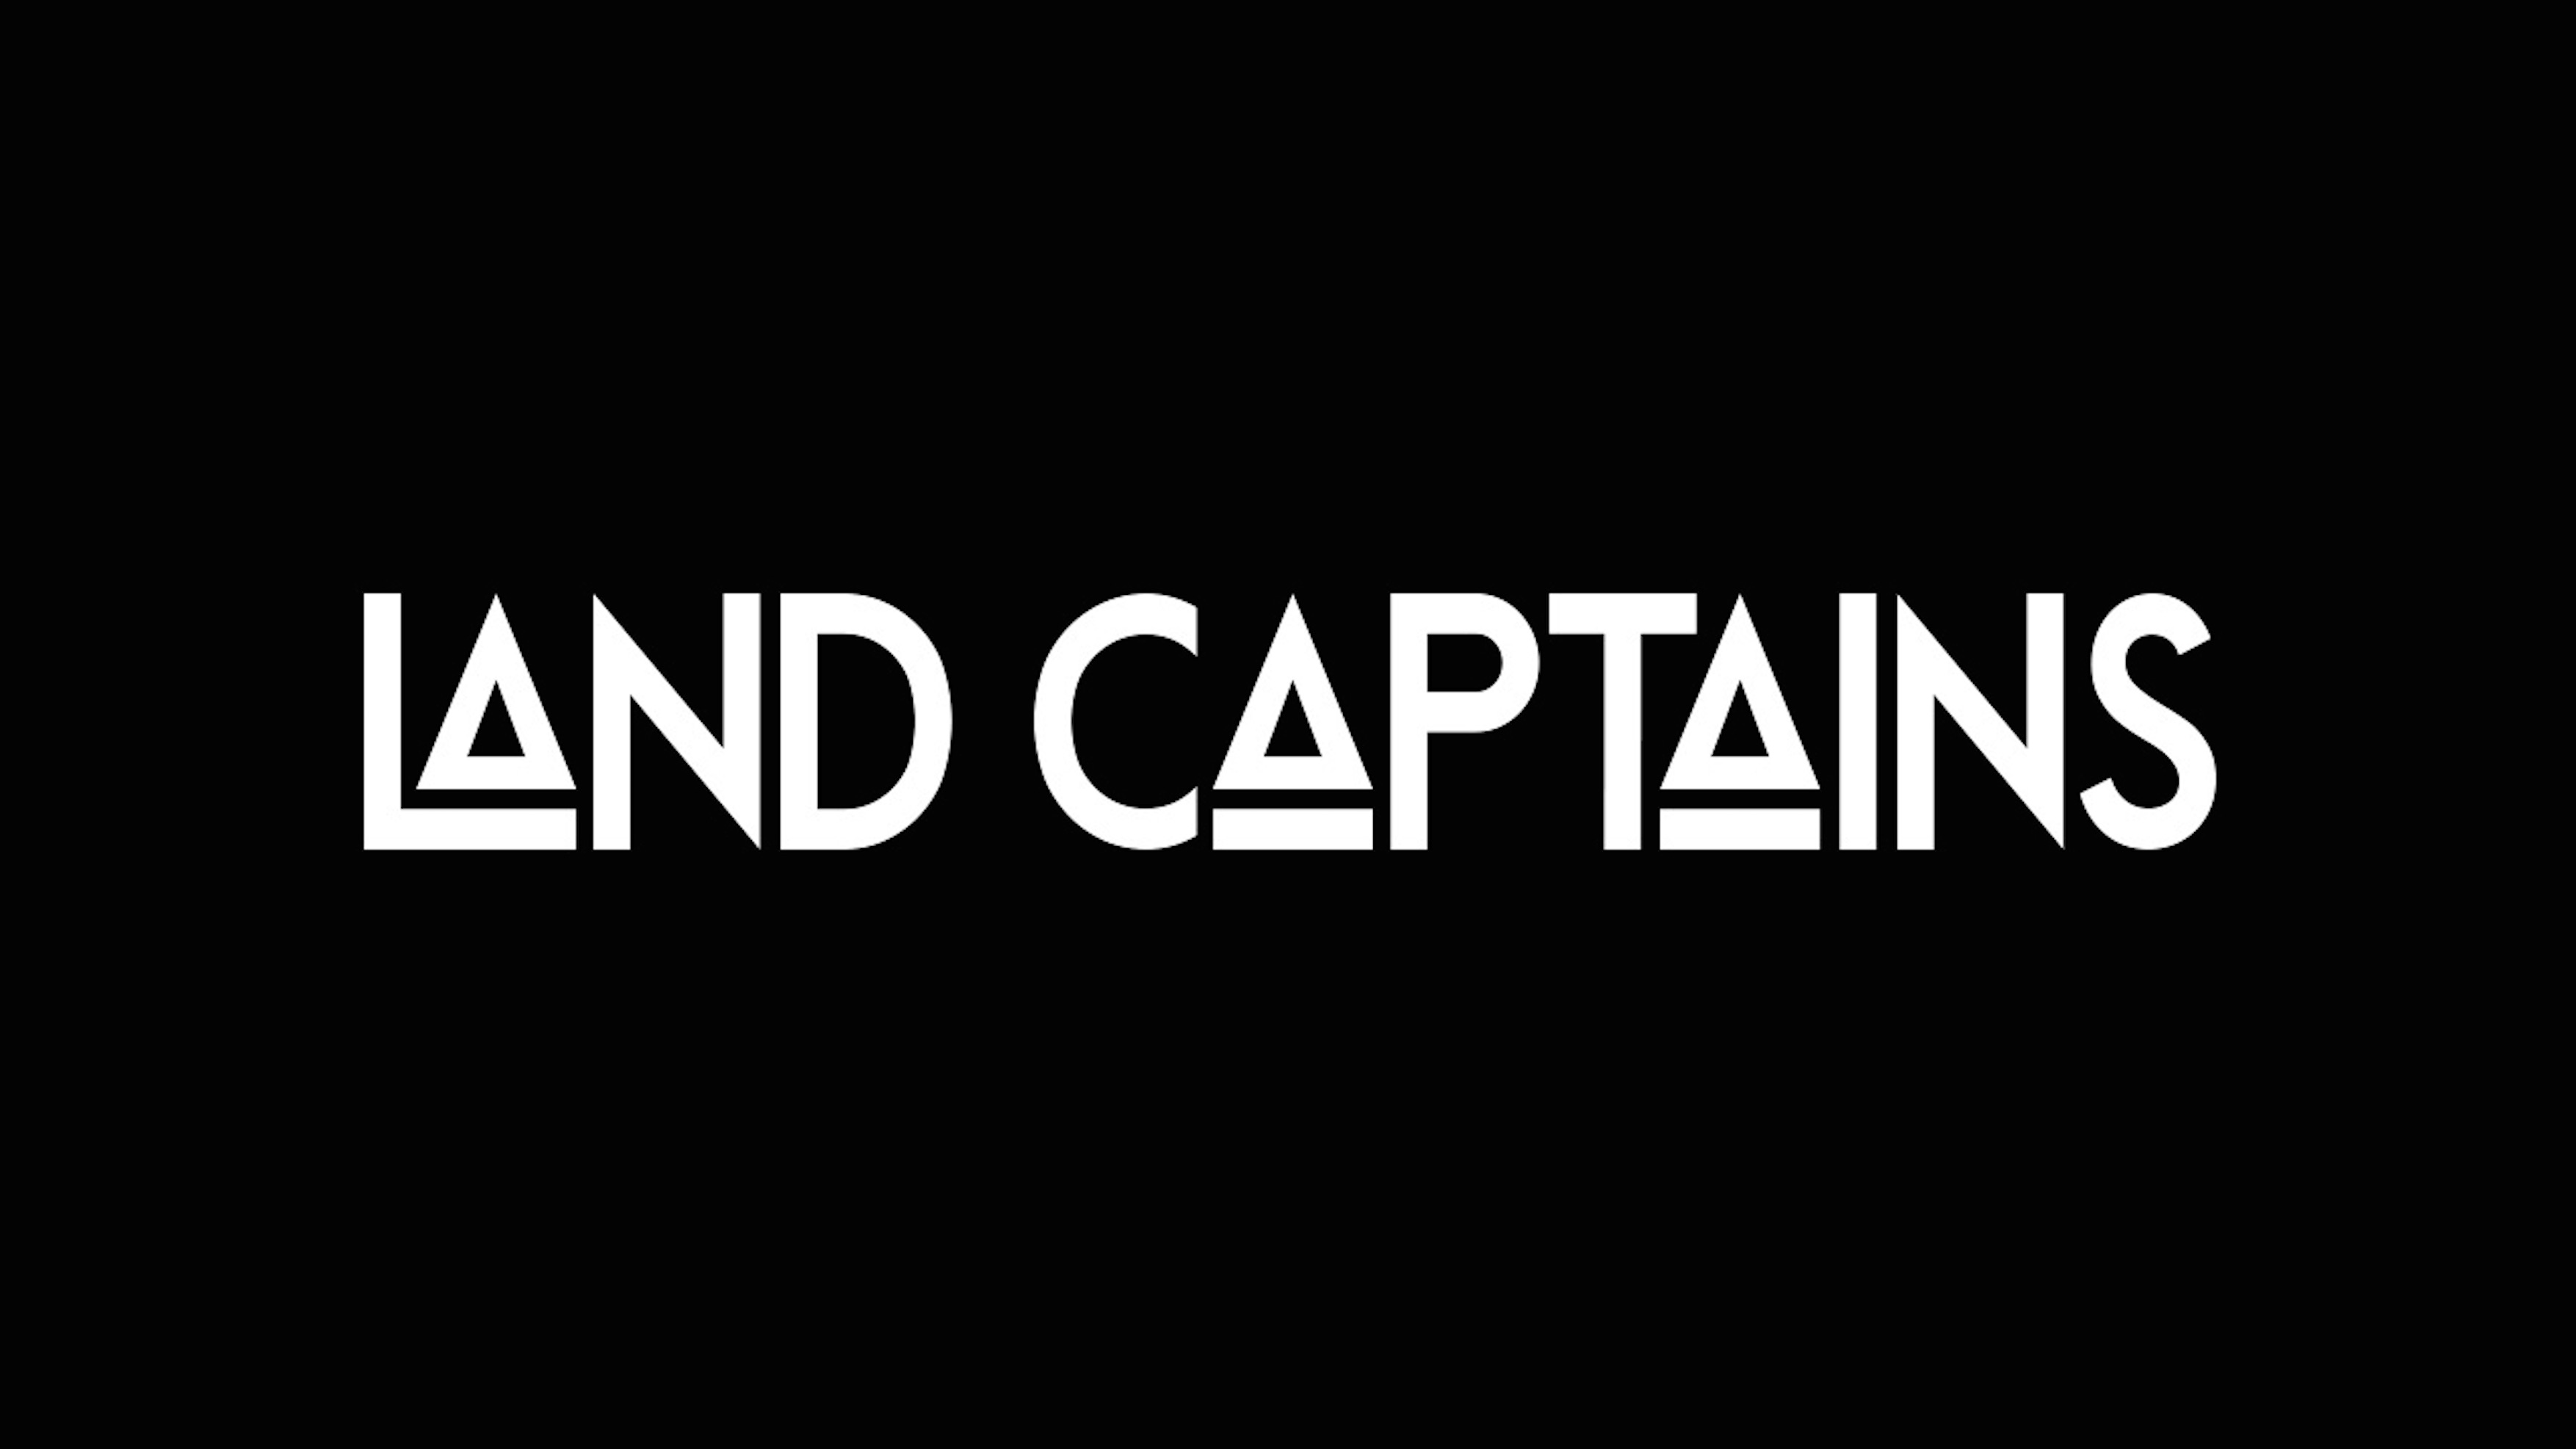 Land Captains